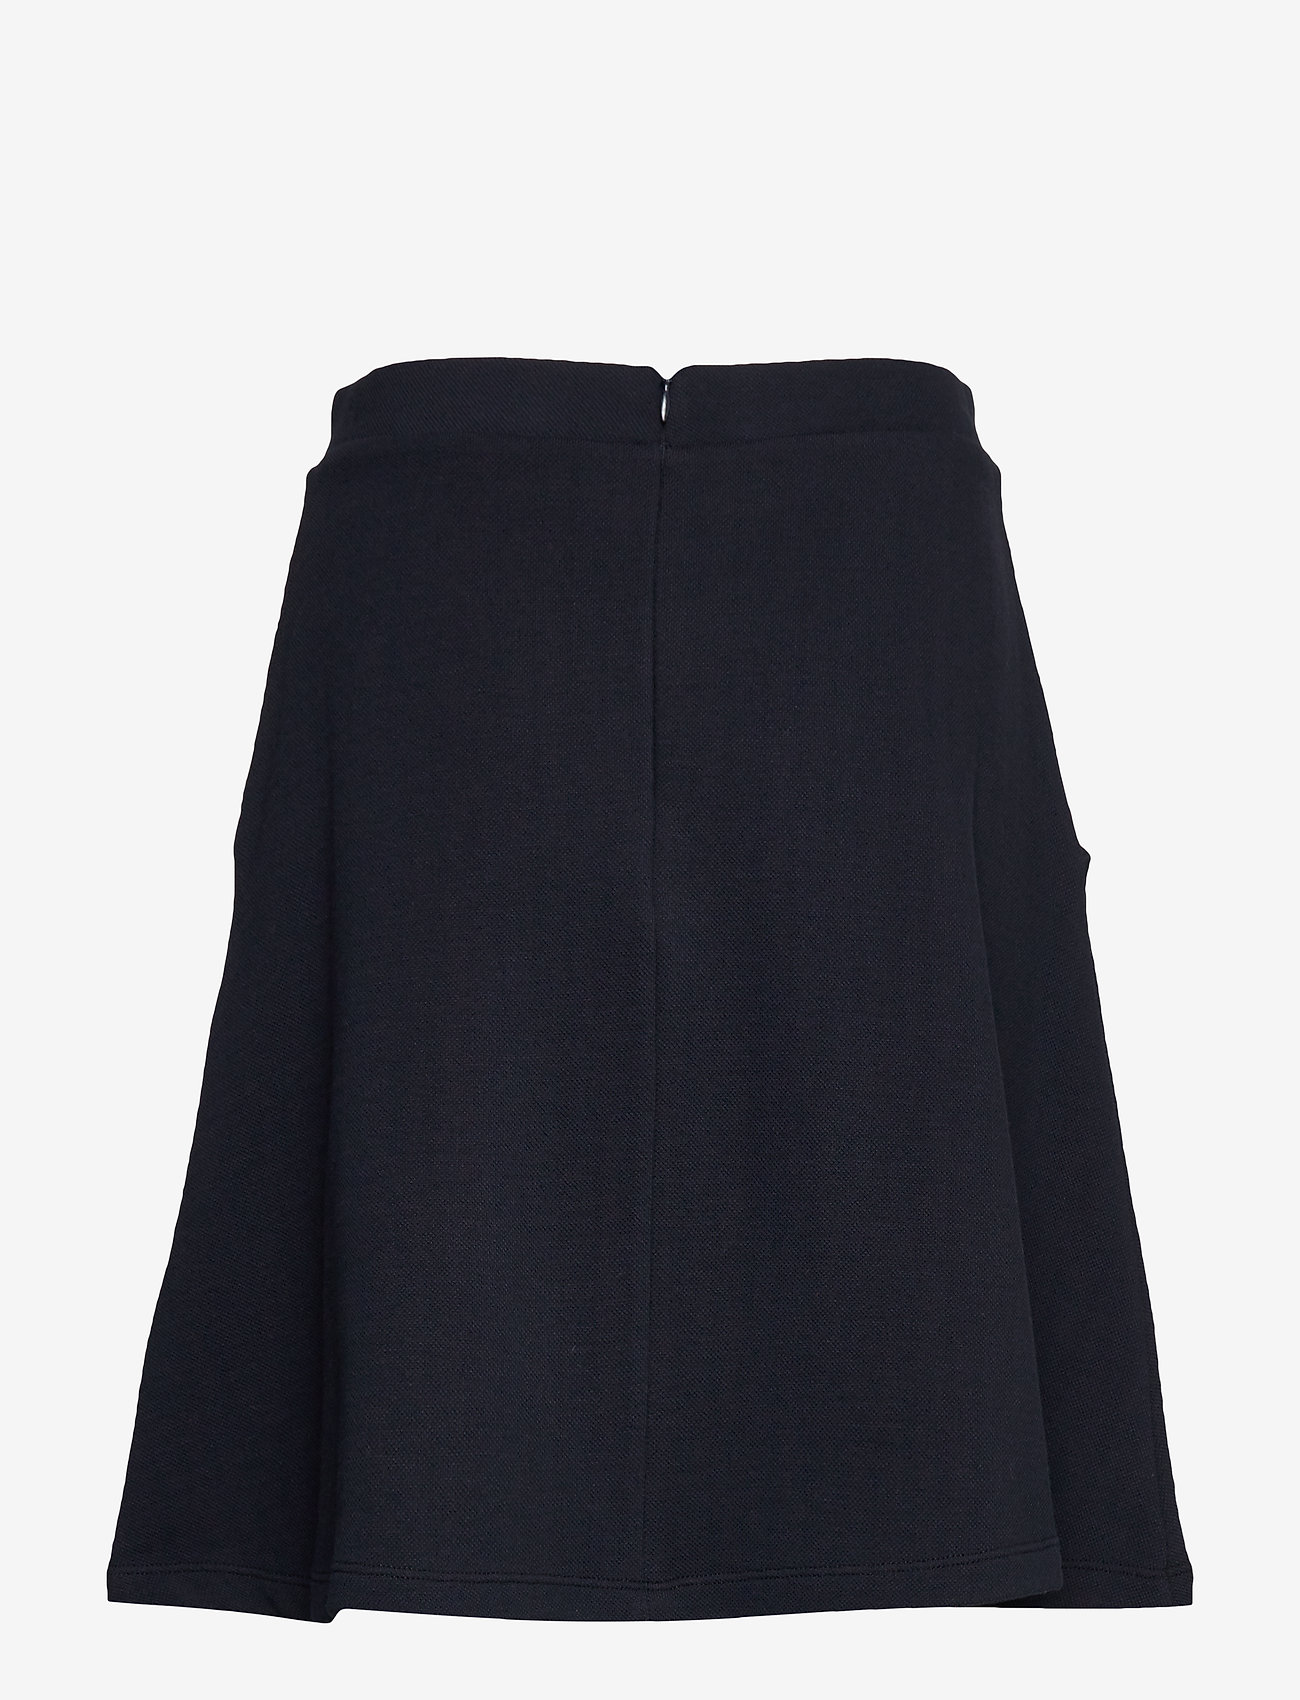 Esprit Casual - Skirts knitted - short skirts - navy - 1